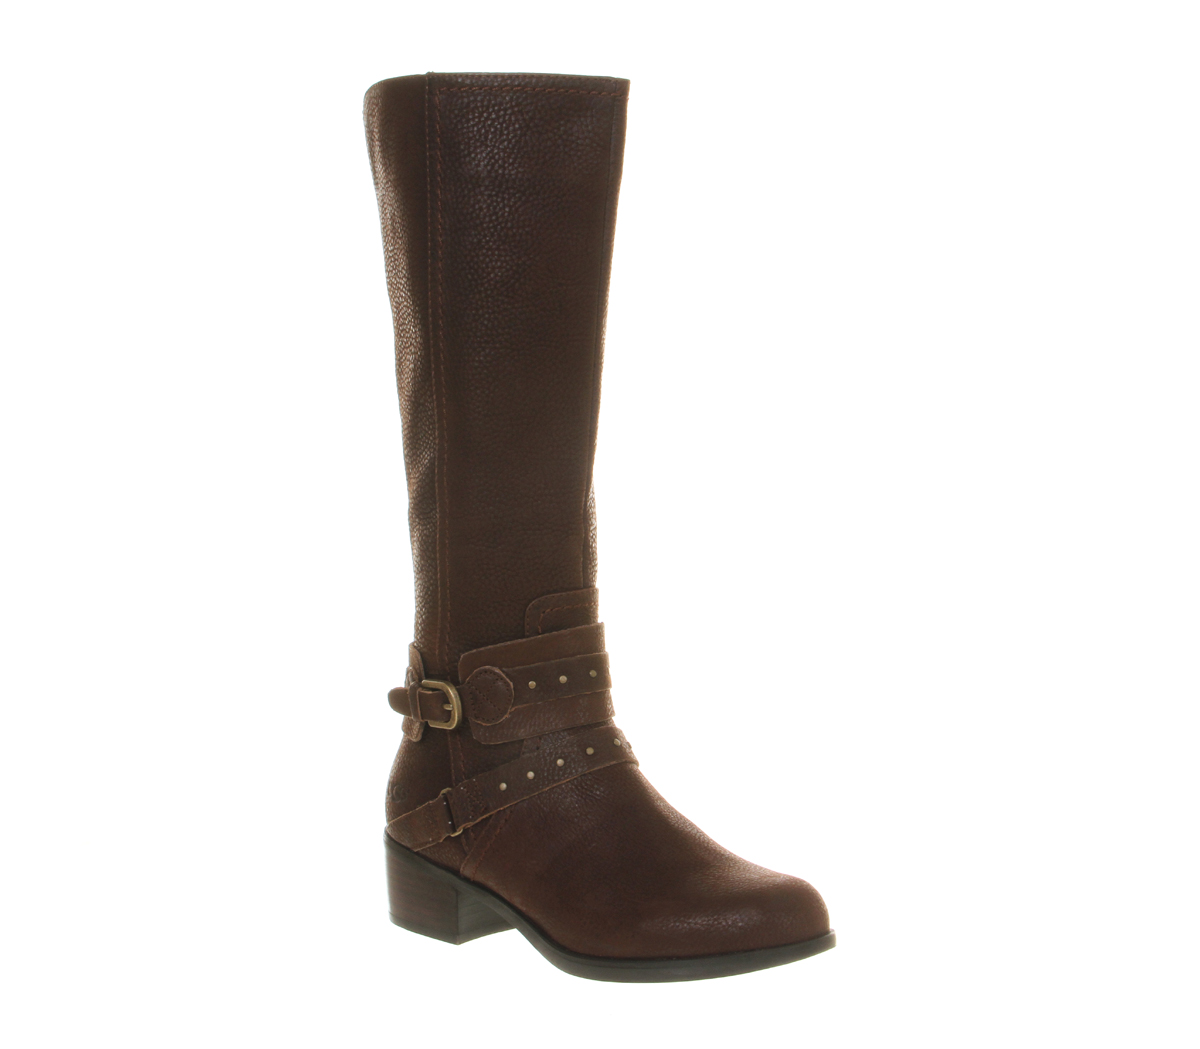 ugg esplanade calf boot in brown lyst